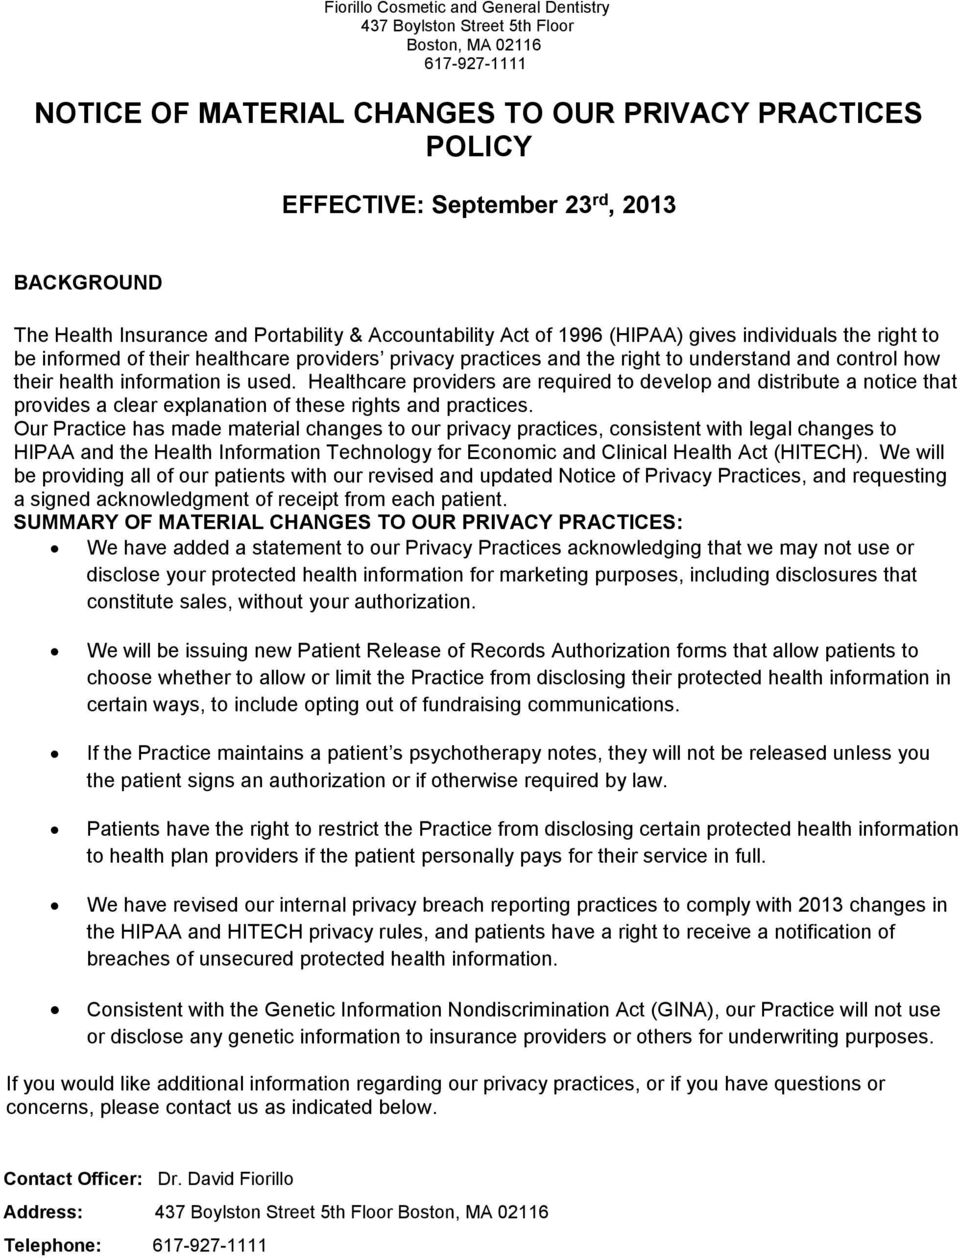 Dental Office Hipaa Notice Of Privacy Practices Pdf 2020 Template